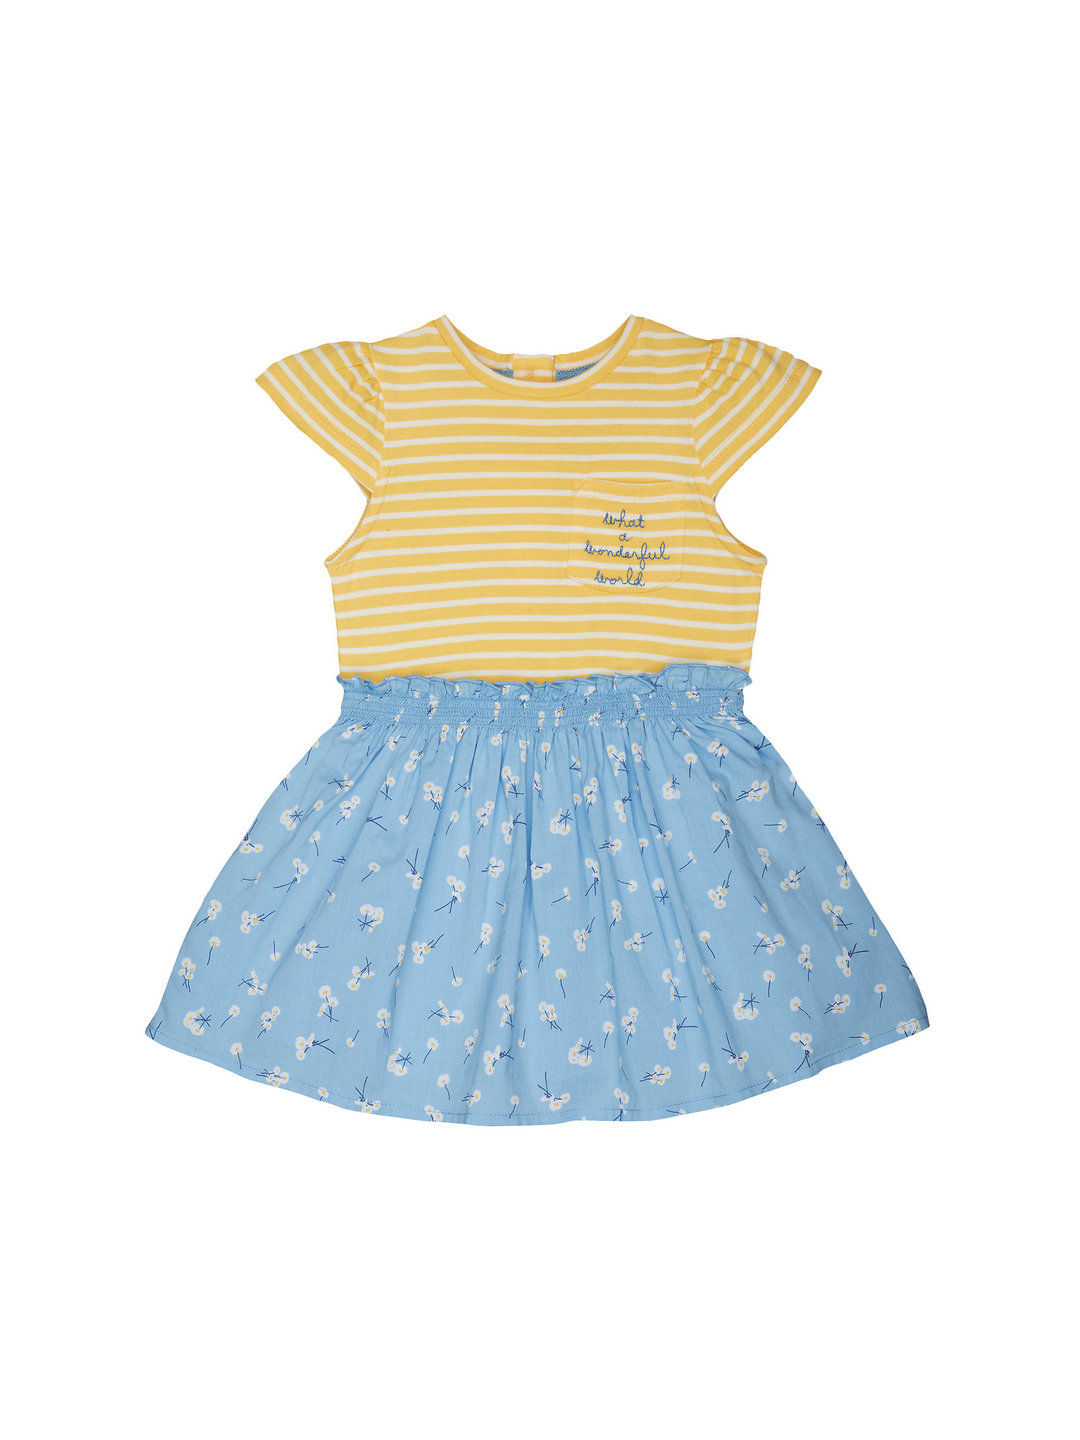 Mothercare | Yellow & Blue Striped Dress